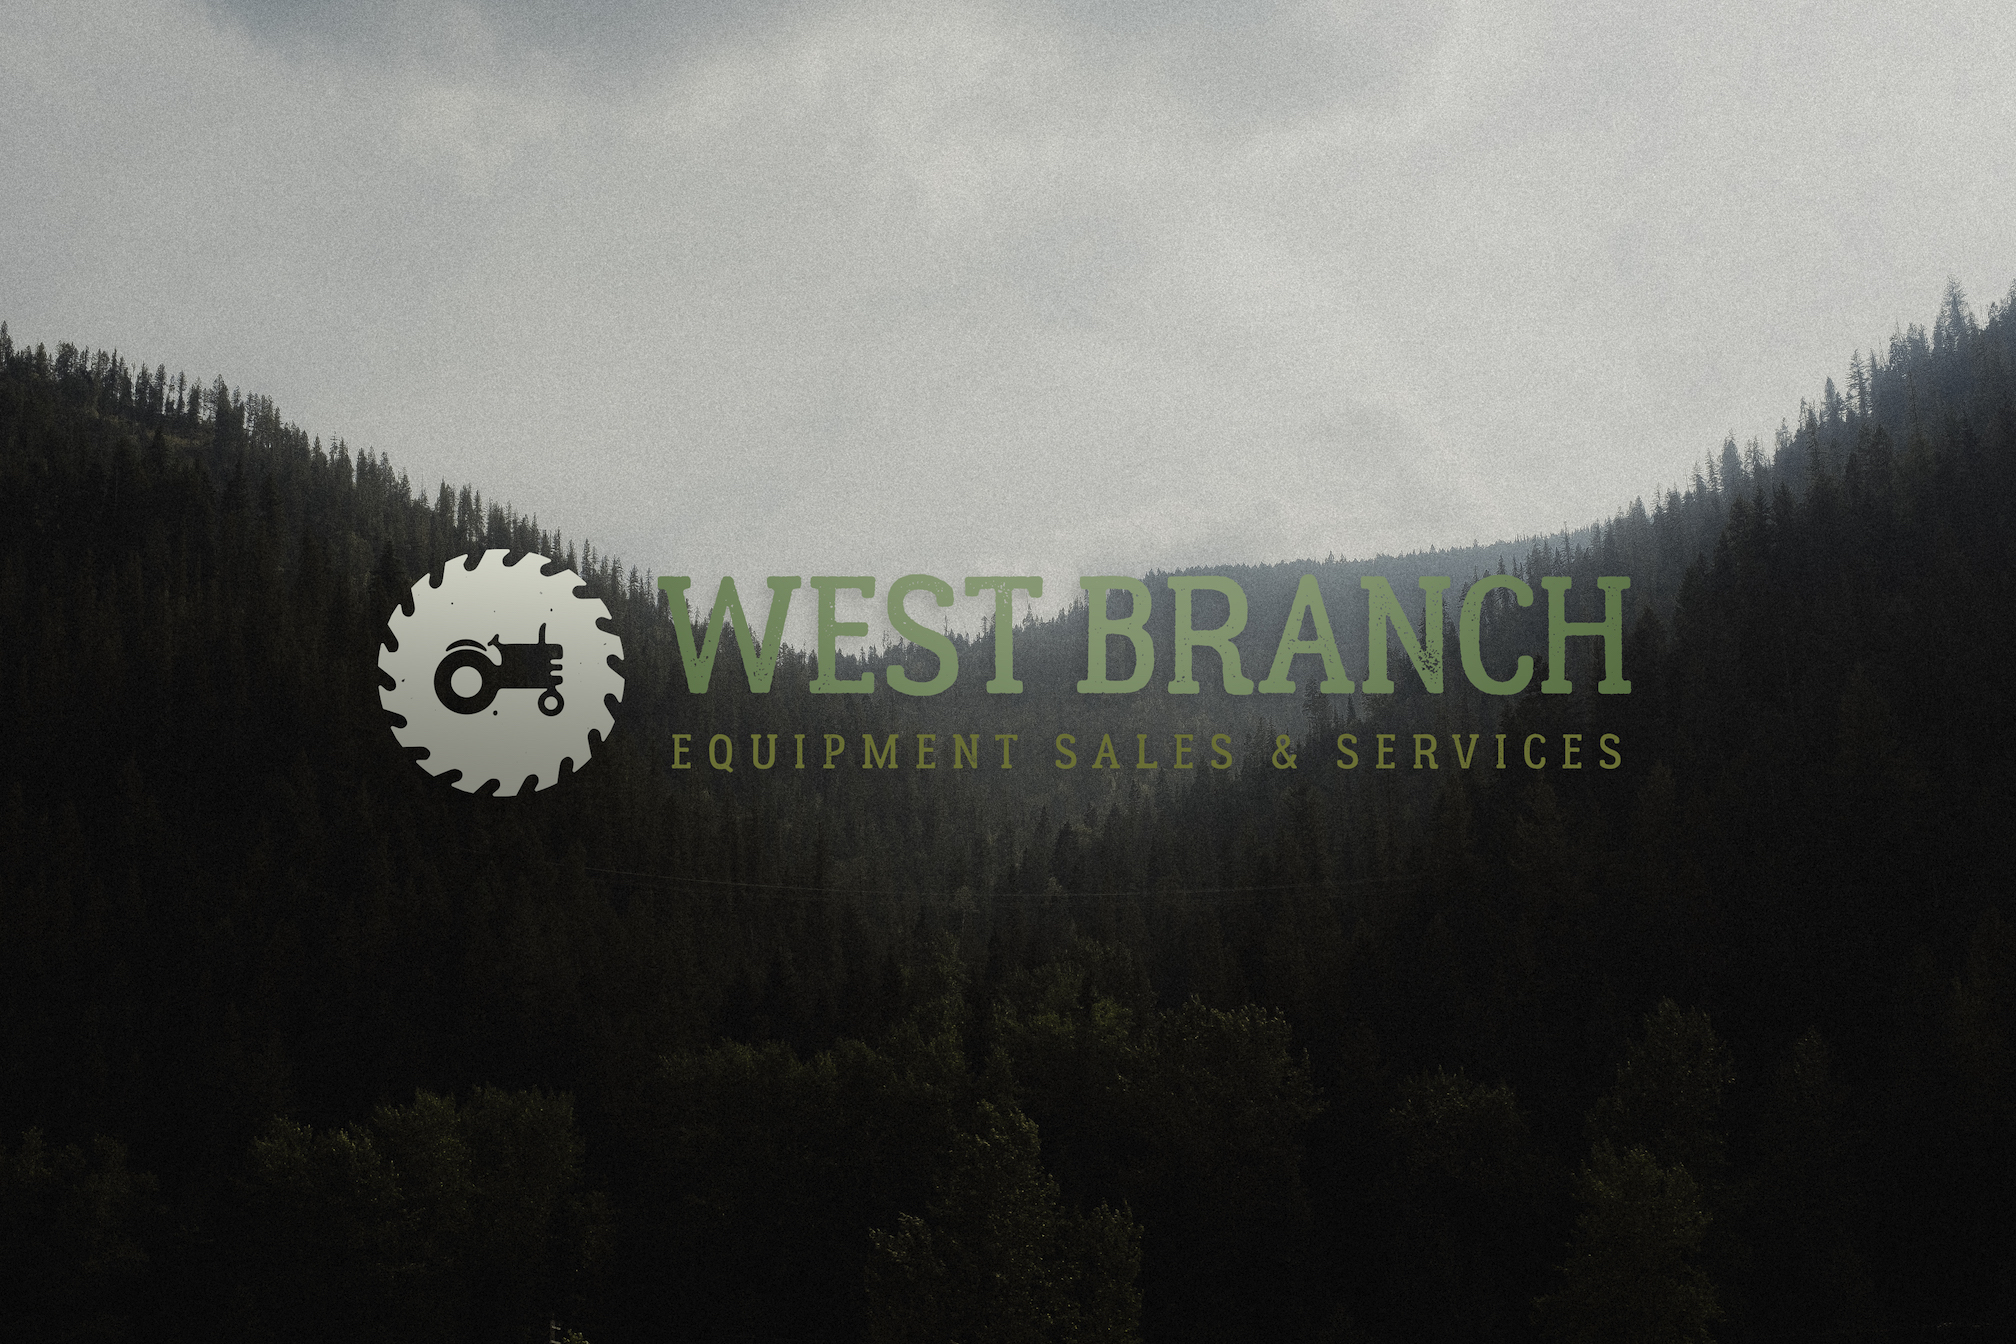 westbranch copy.jpg